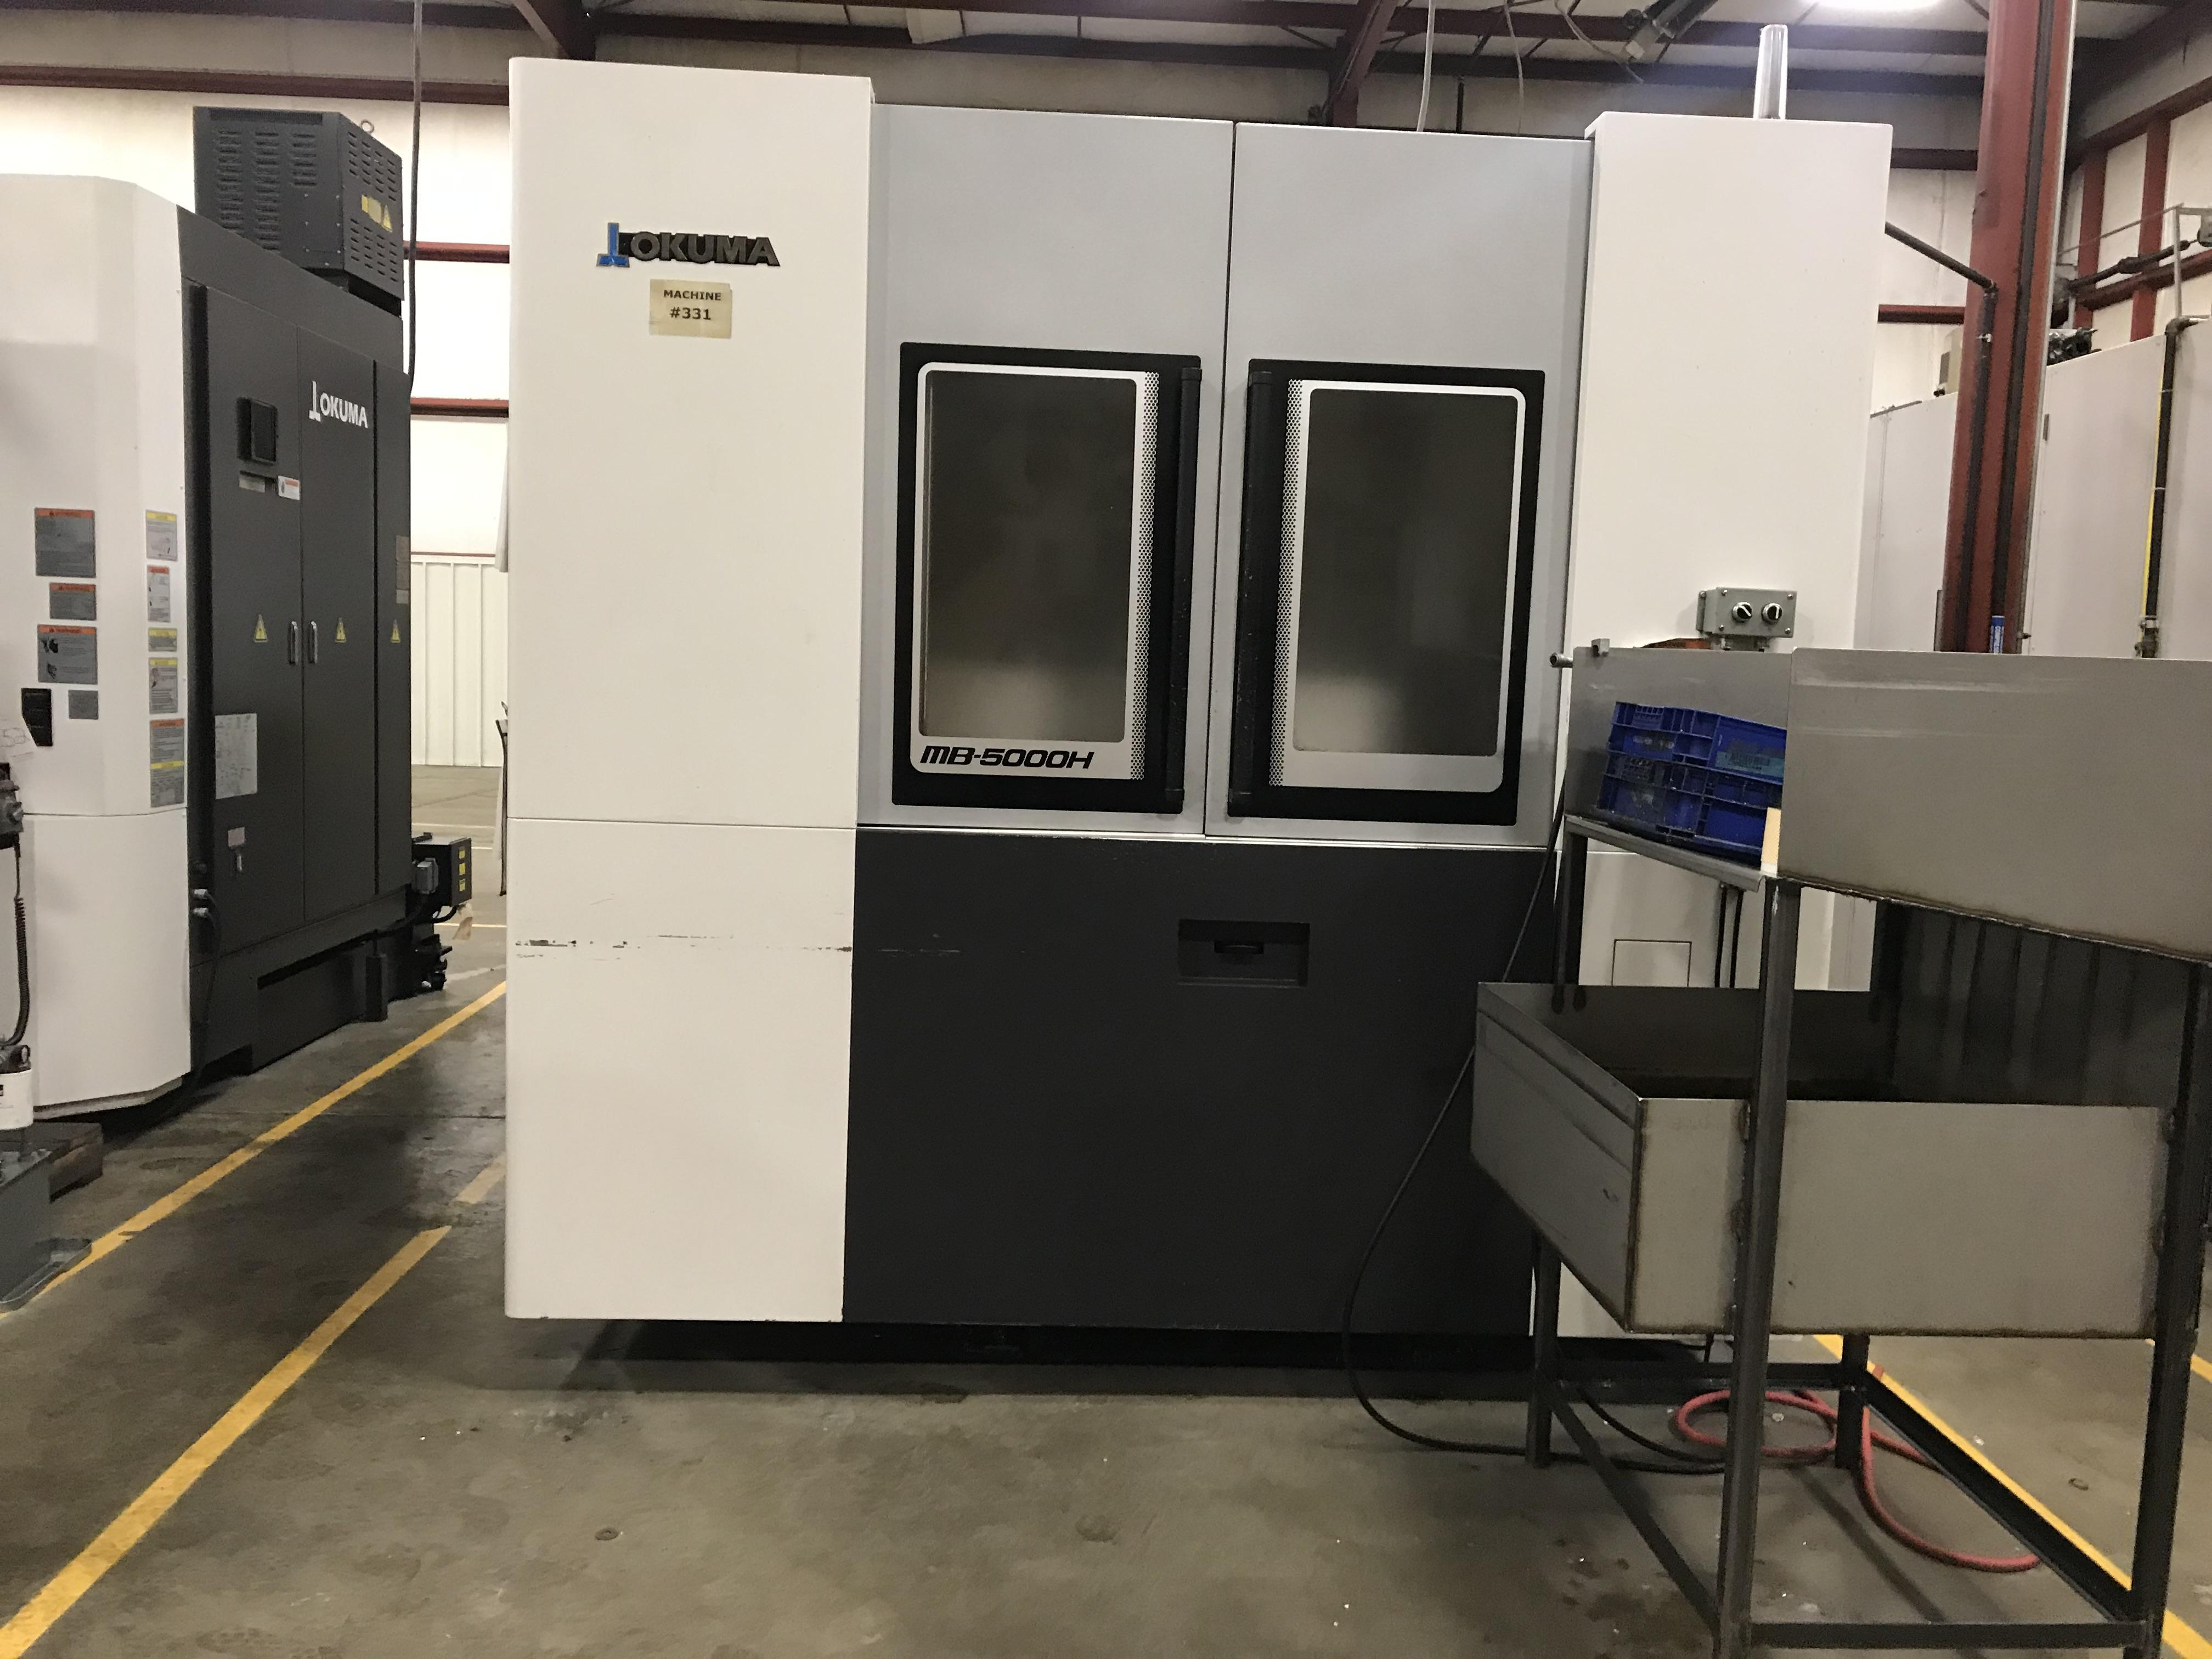 Okuma MB-5000H CNC Horizontal Machining Center, OSP300M, Full 4th, CTS, 19.69